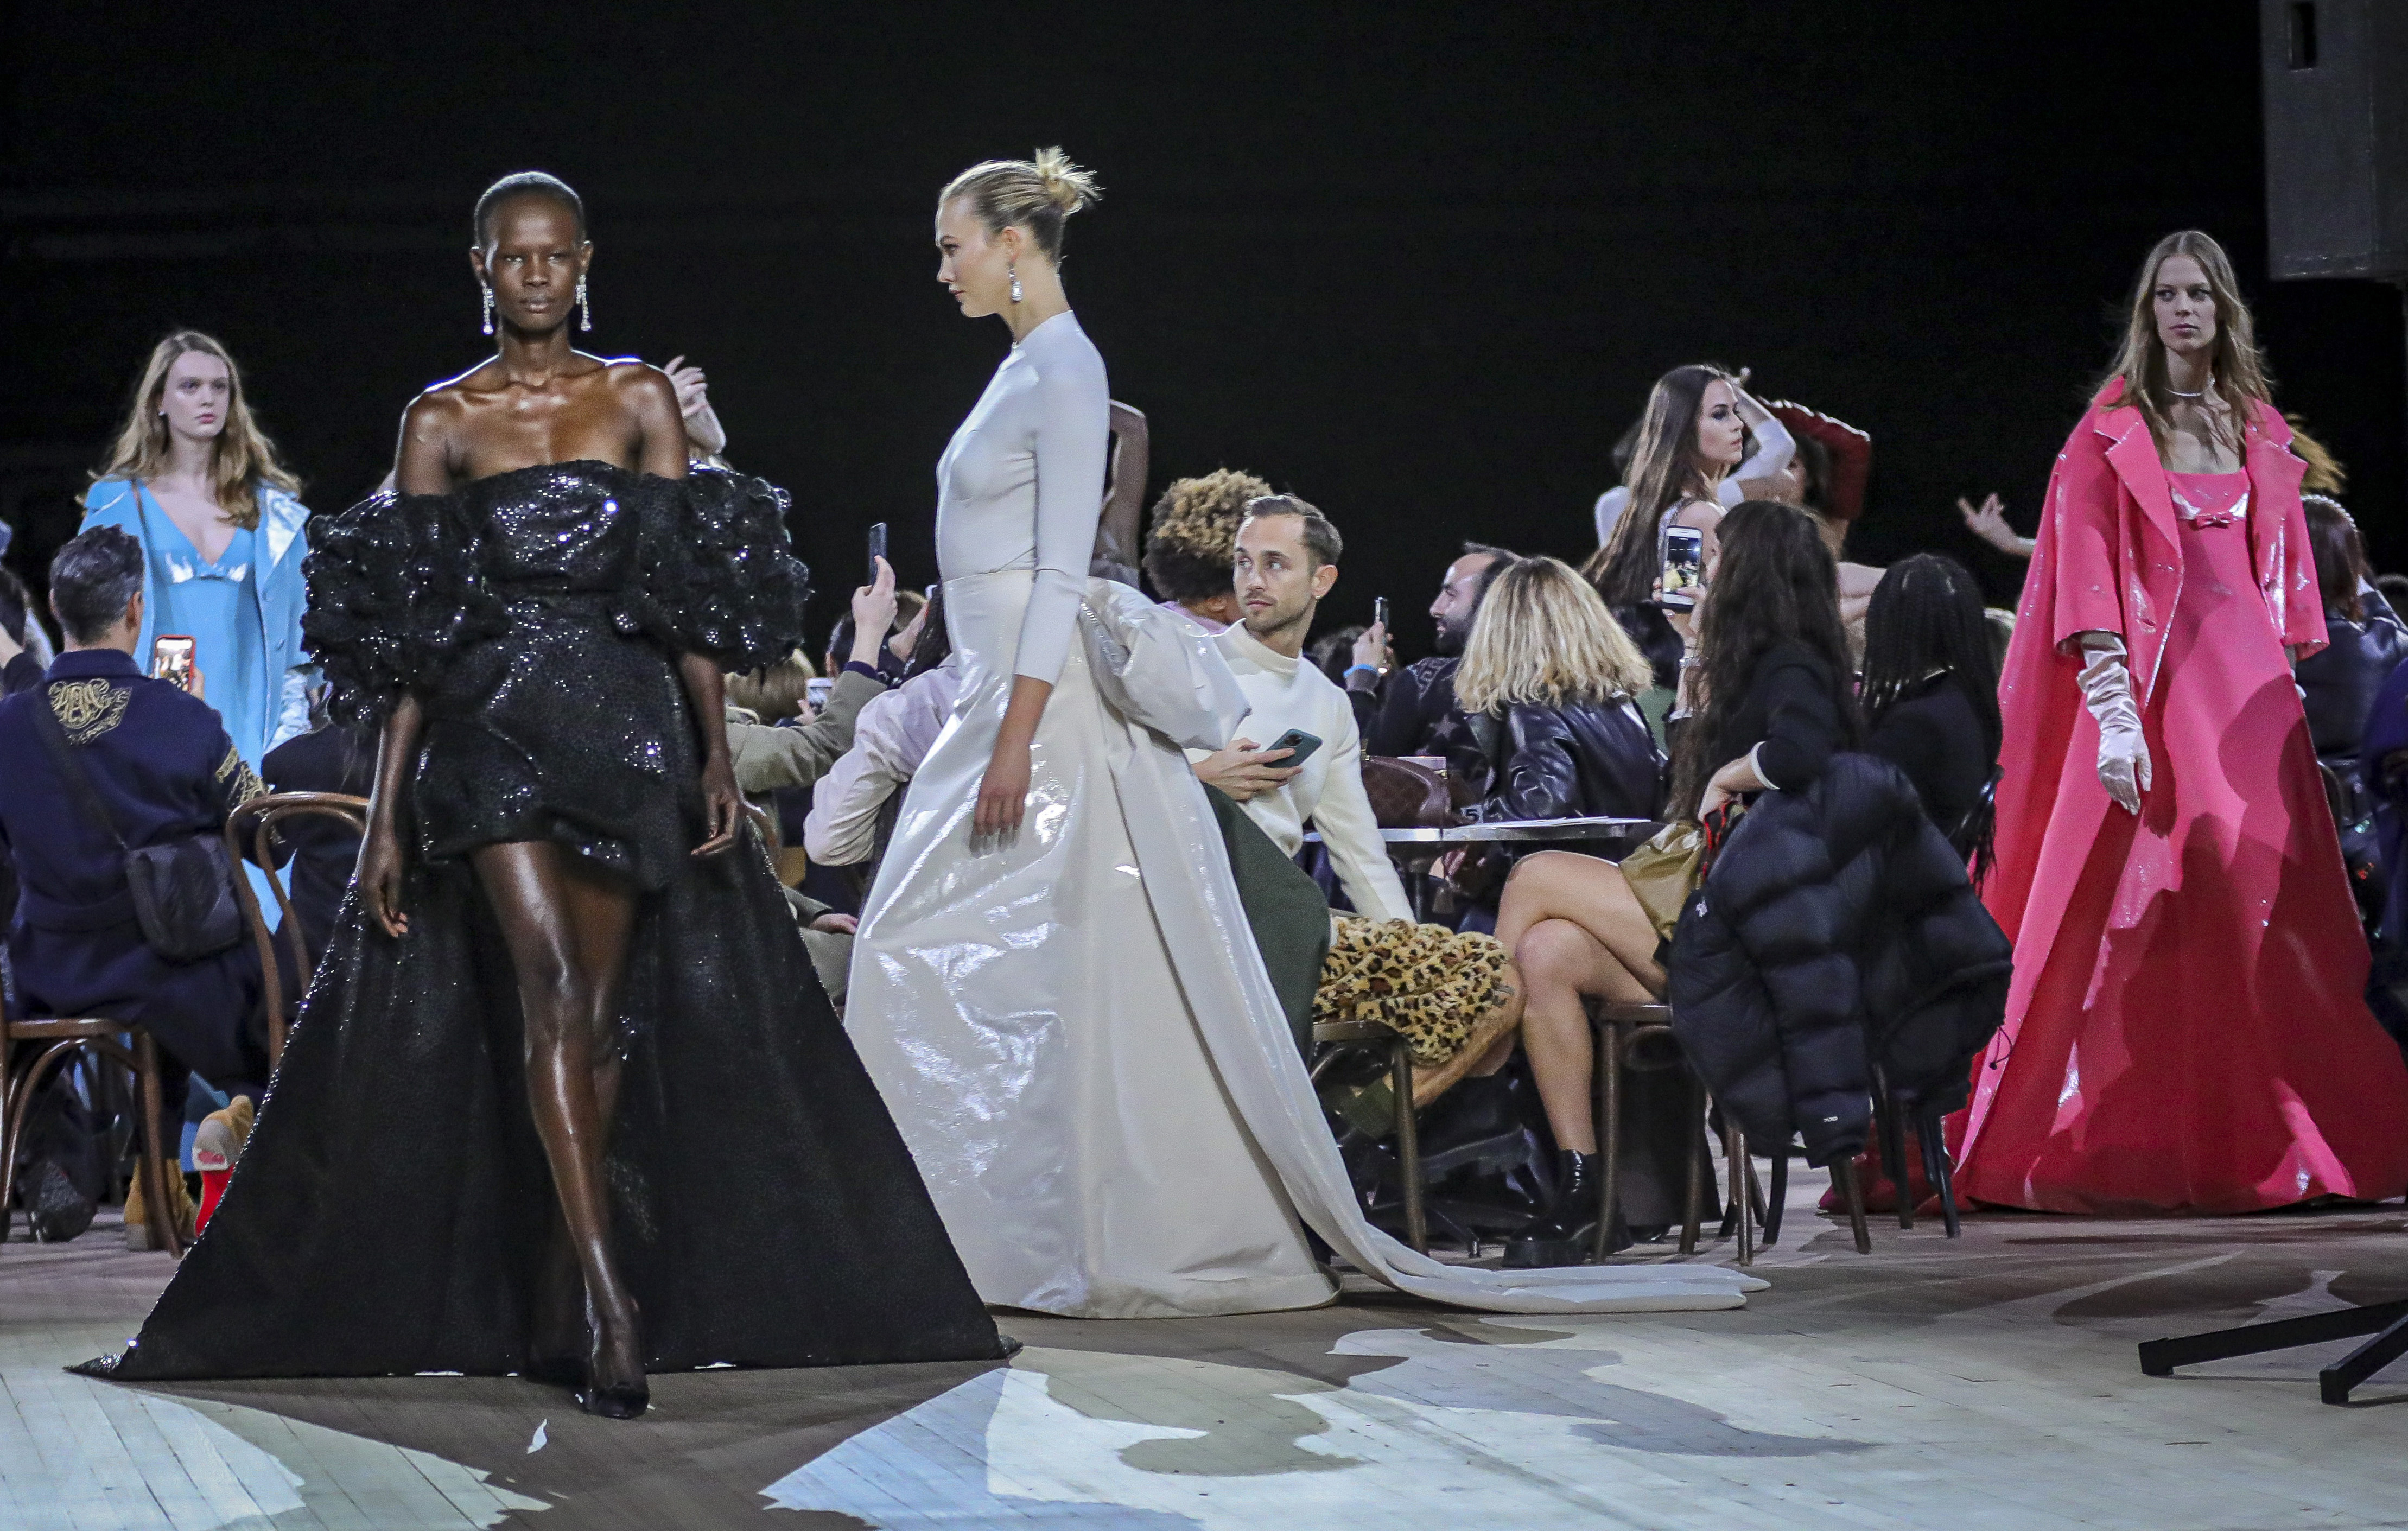 Nyfw Spring 2021 What To Know About Nyfw In September 2020 Wwd